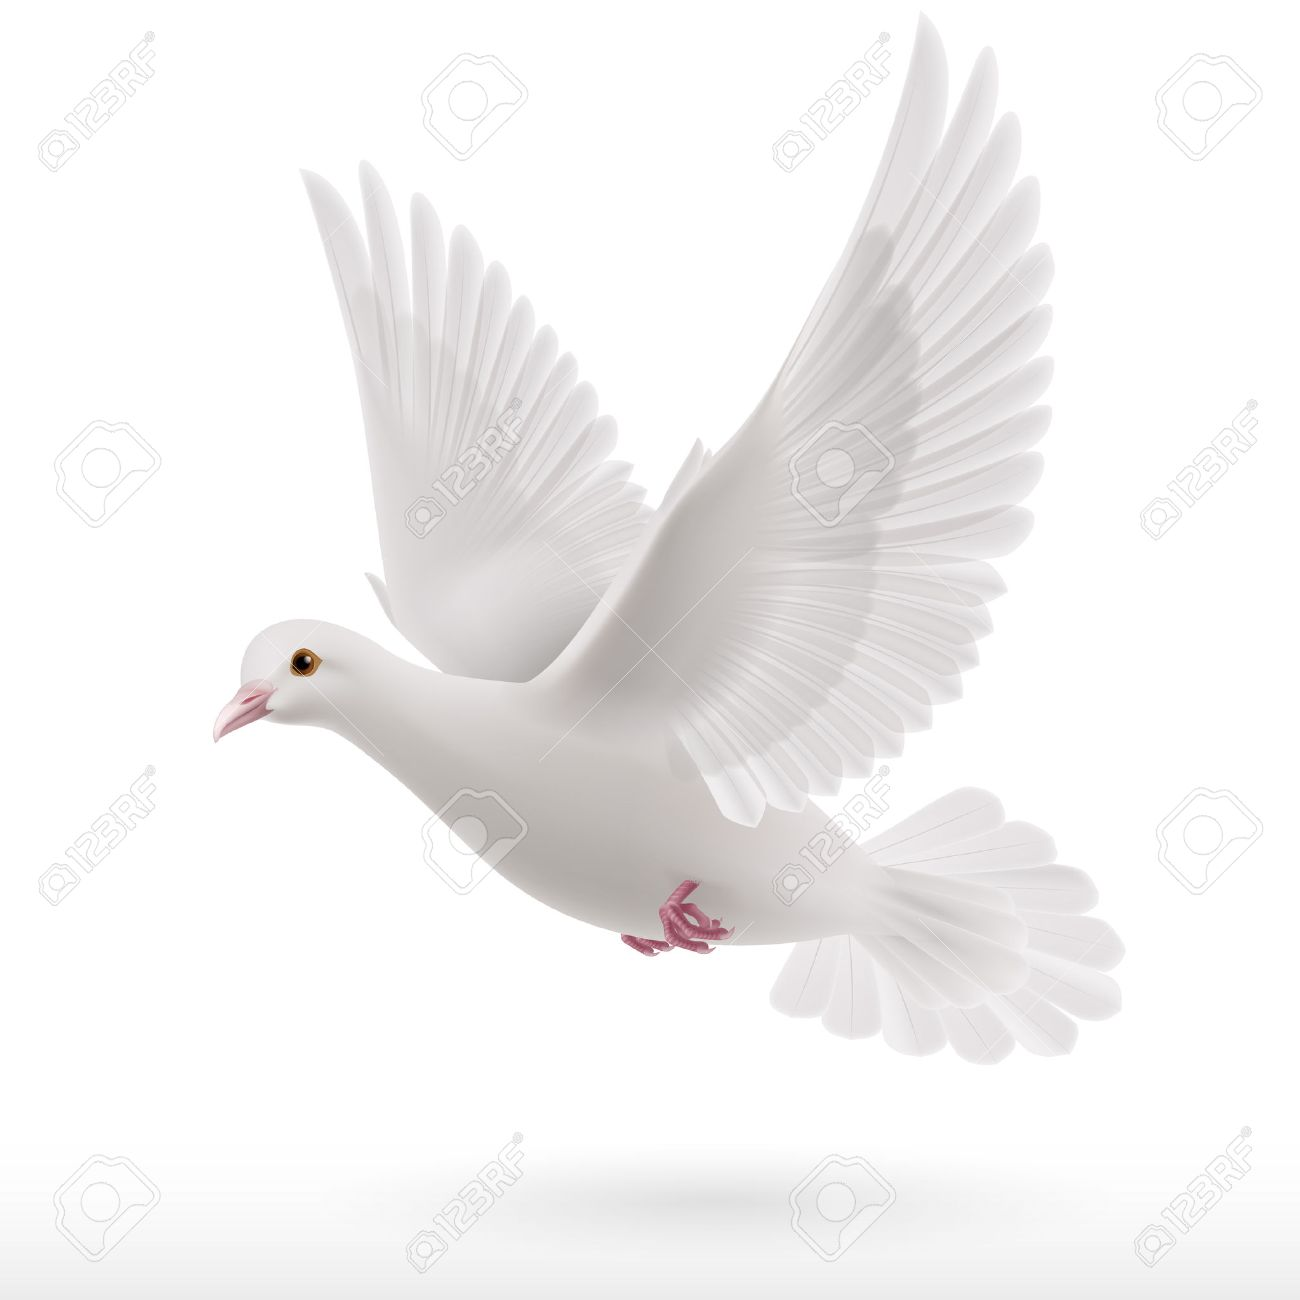 Flying White Dove On White Background As Symbol Of Peace Royalty